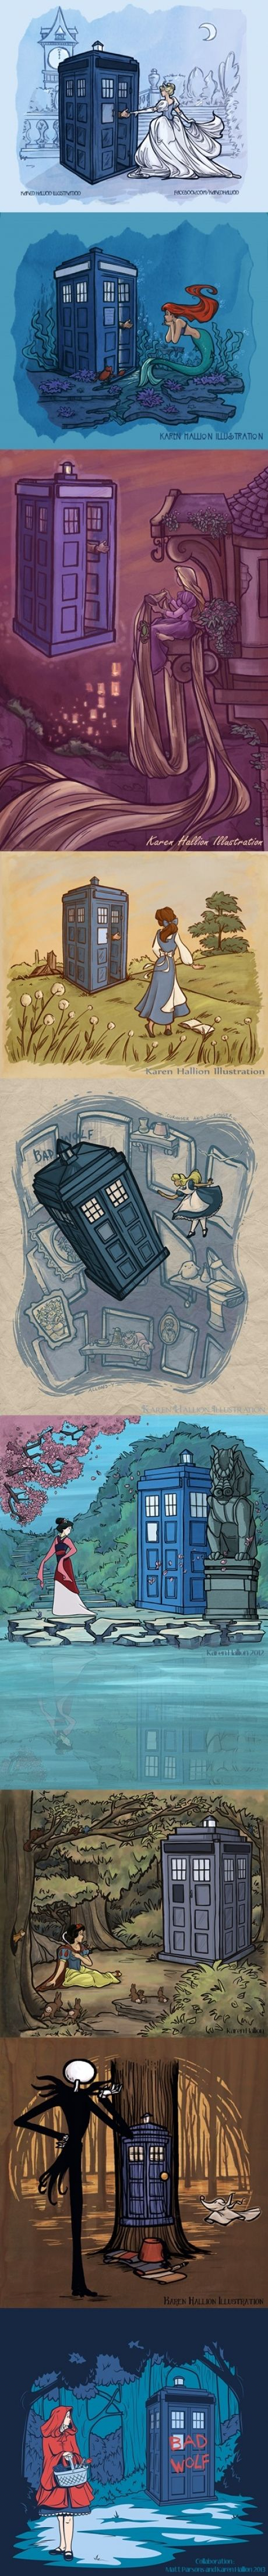 Different cartoon characters becoming the Doctor's companion. <3  I would totally ship Belle becoming a companion not only because she's my favorite Disney princess, but also because she has the greatest weapon of all time...books...in a huge library!